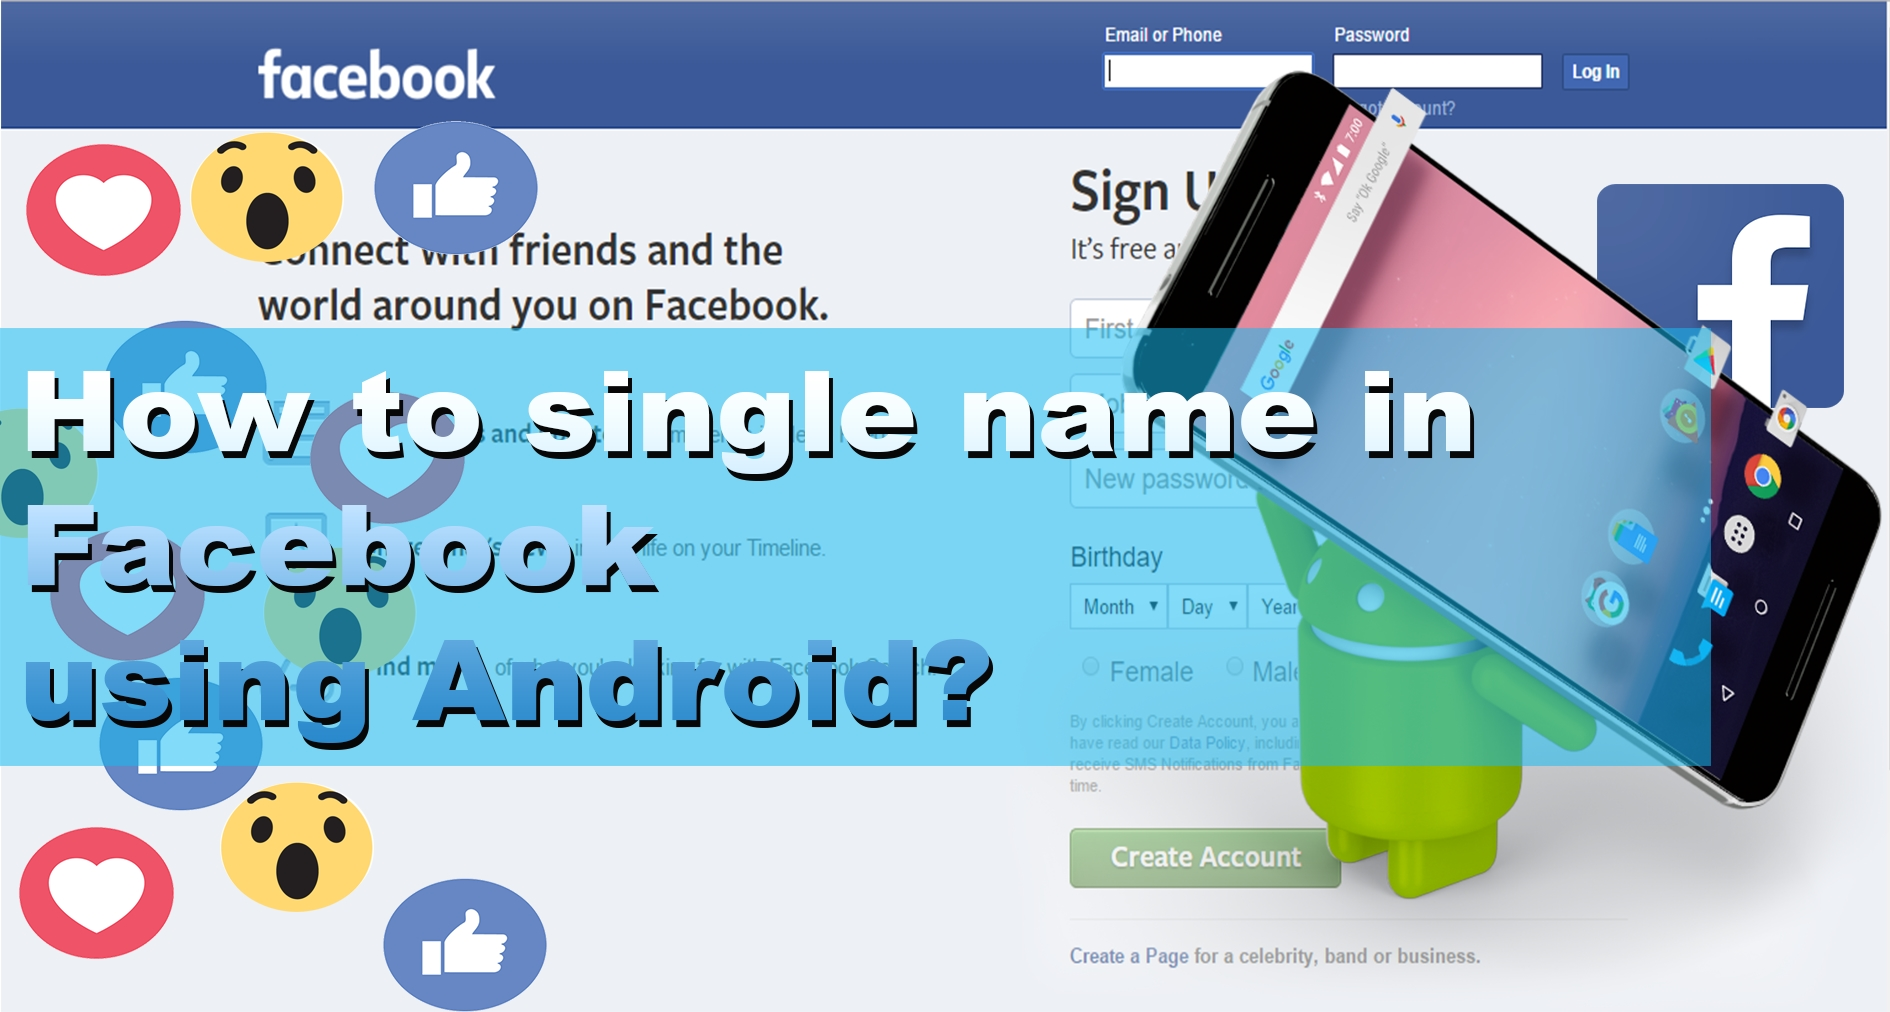 how_to_single_name_in_facebook